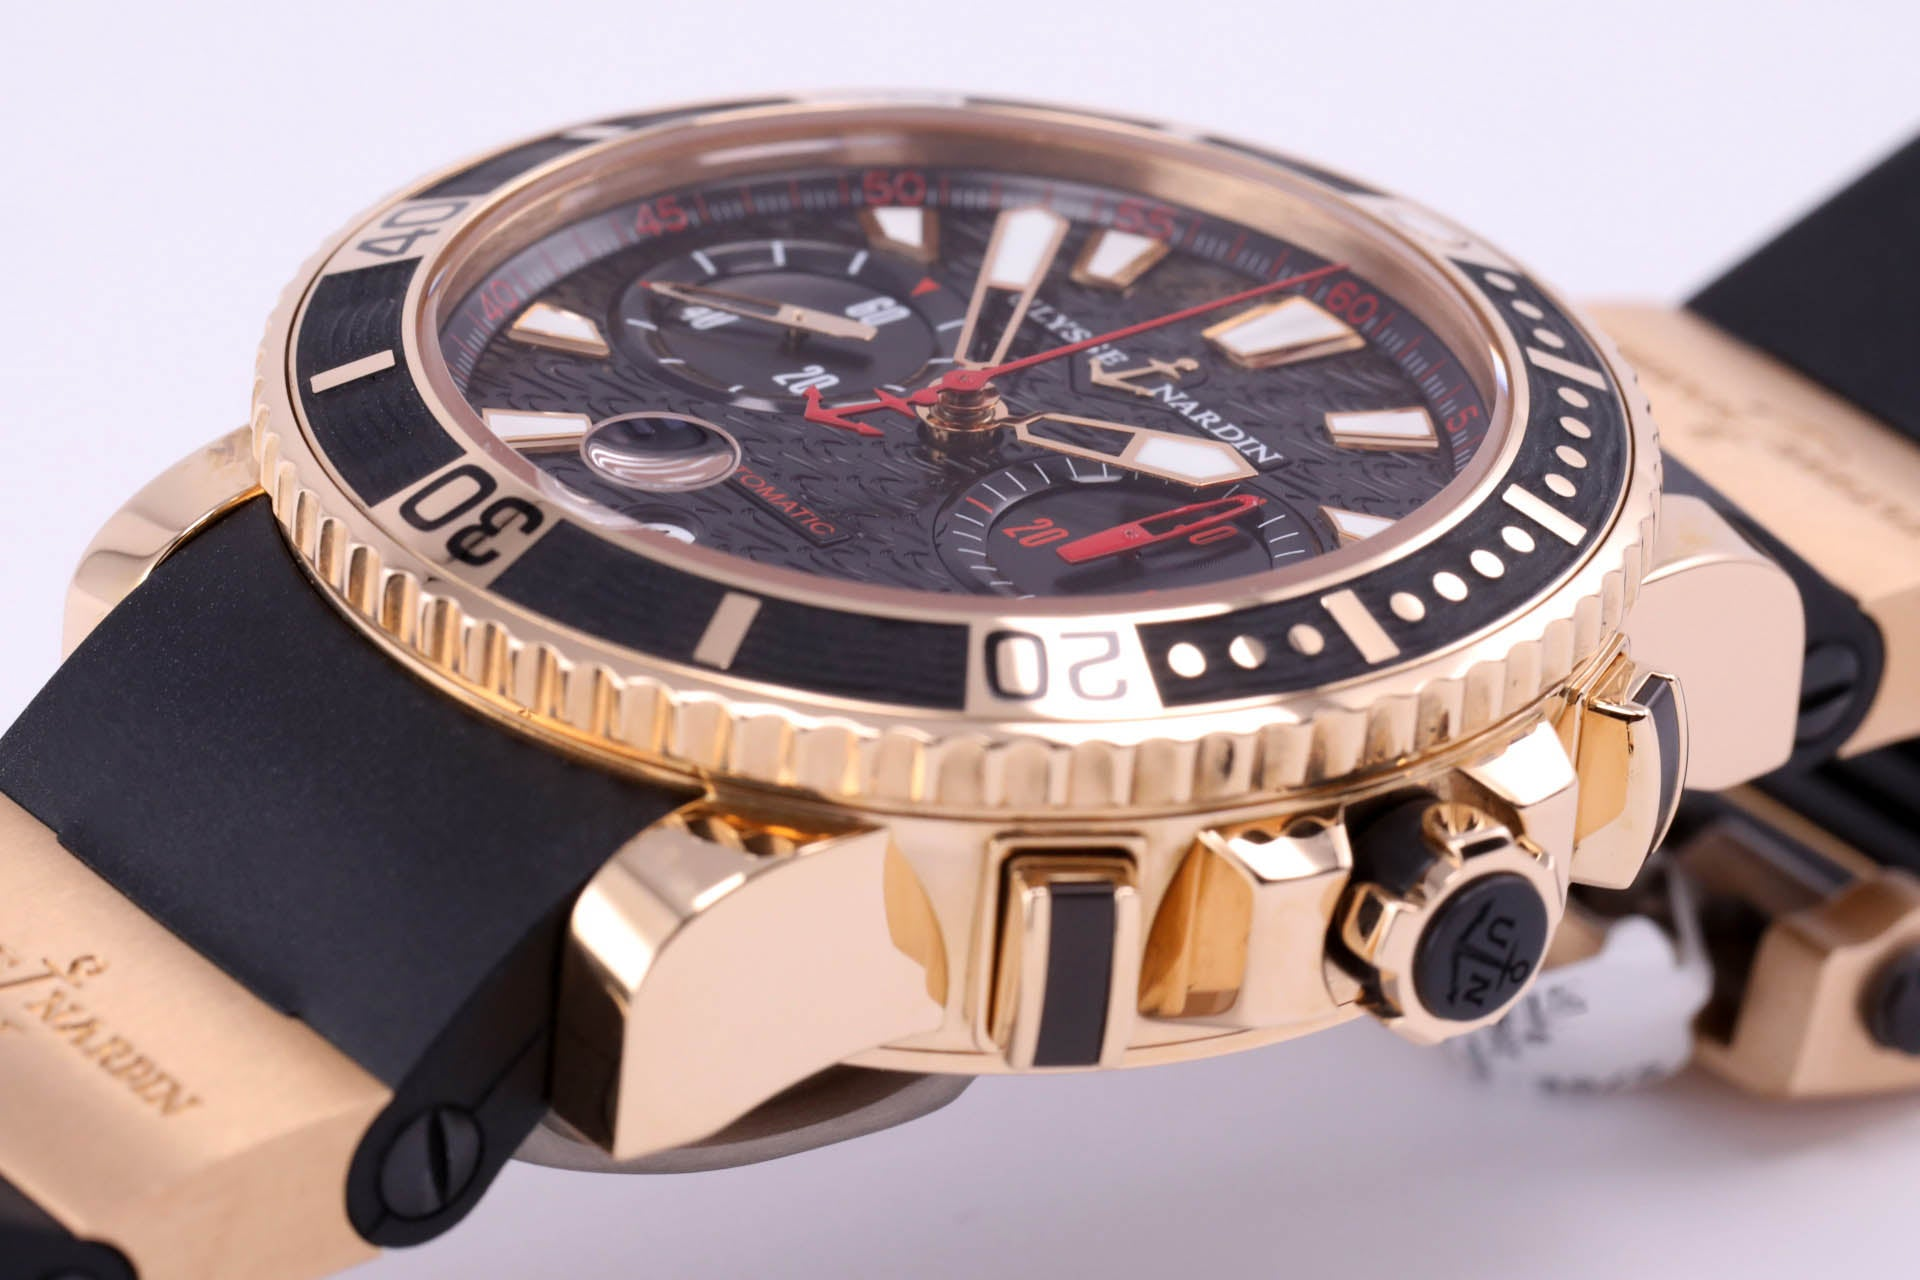 Ulysse Nardin Maxi Marine Diver Chronograph 18kt Gold Edition